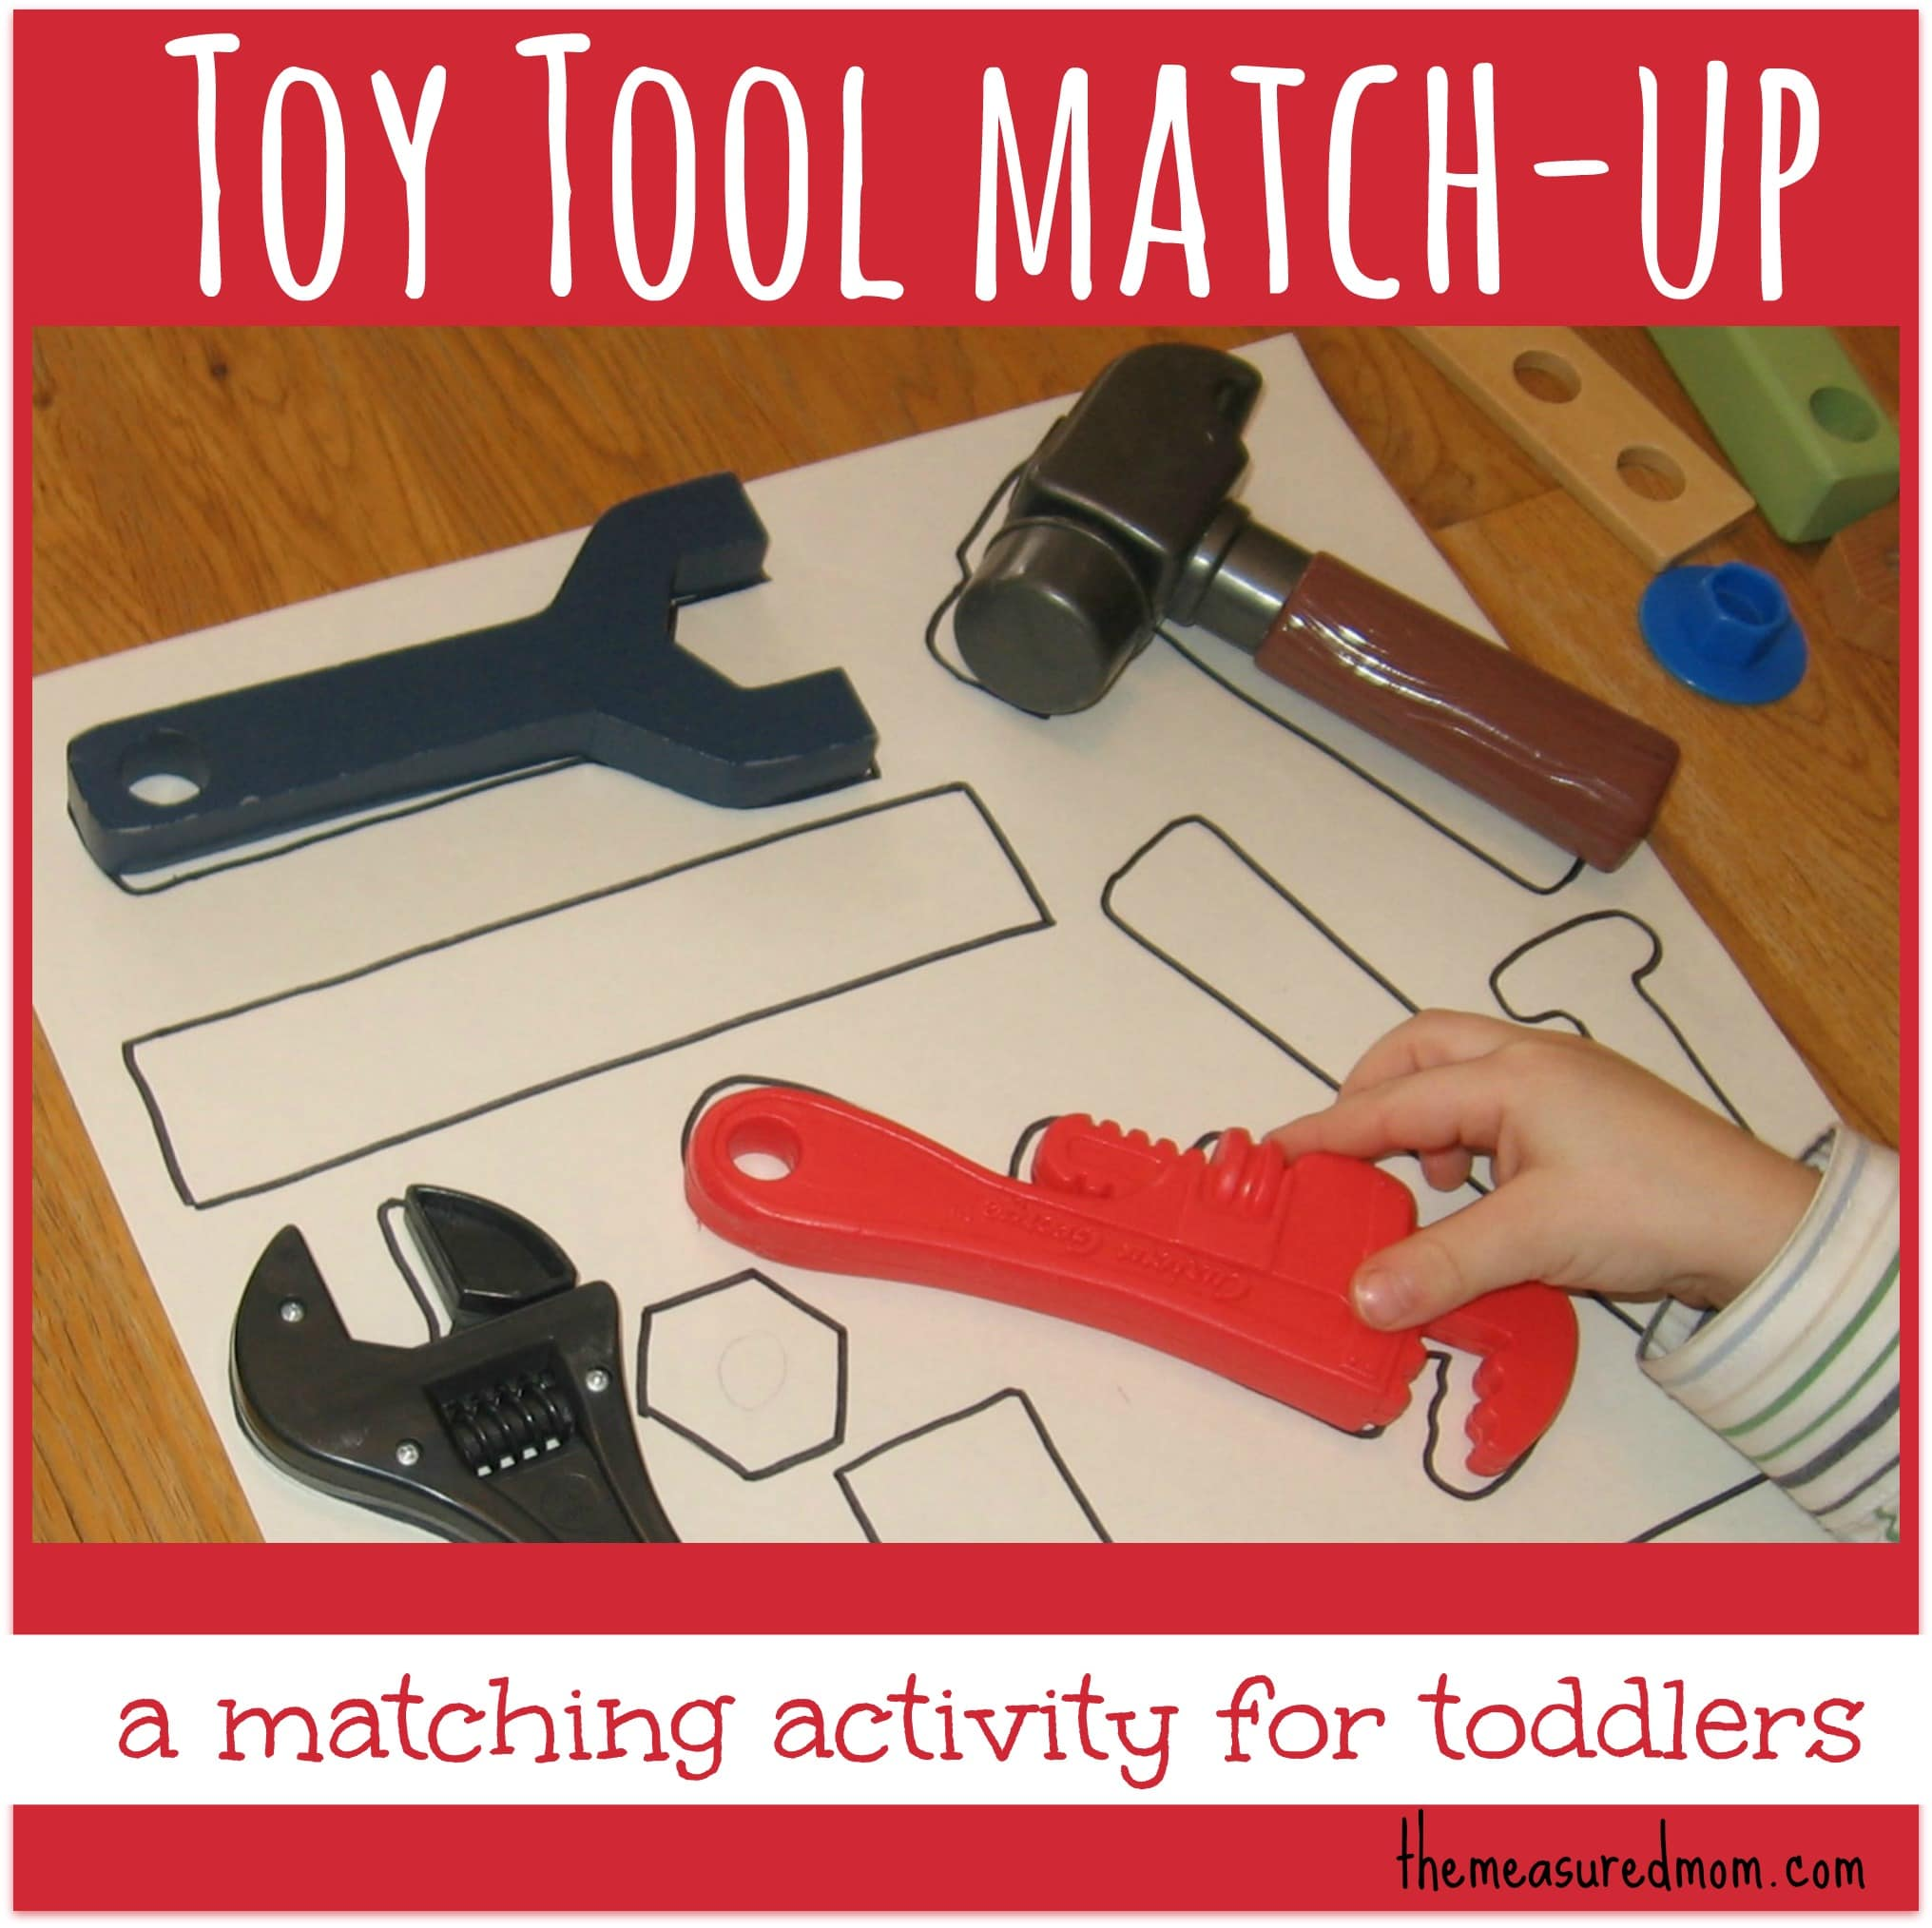 Toy Tool Match up A Matching Activity for Toddlers The Measured Mom